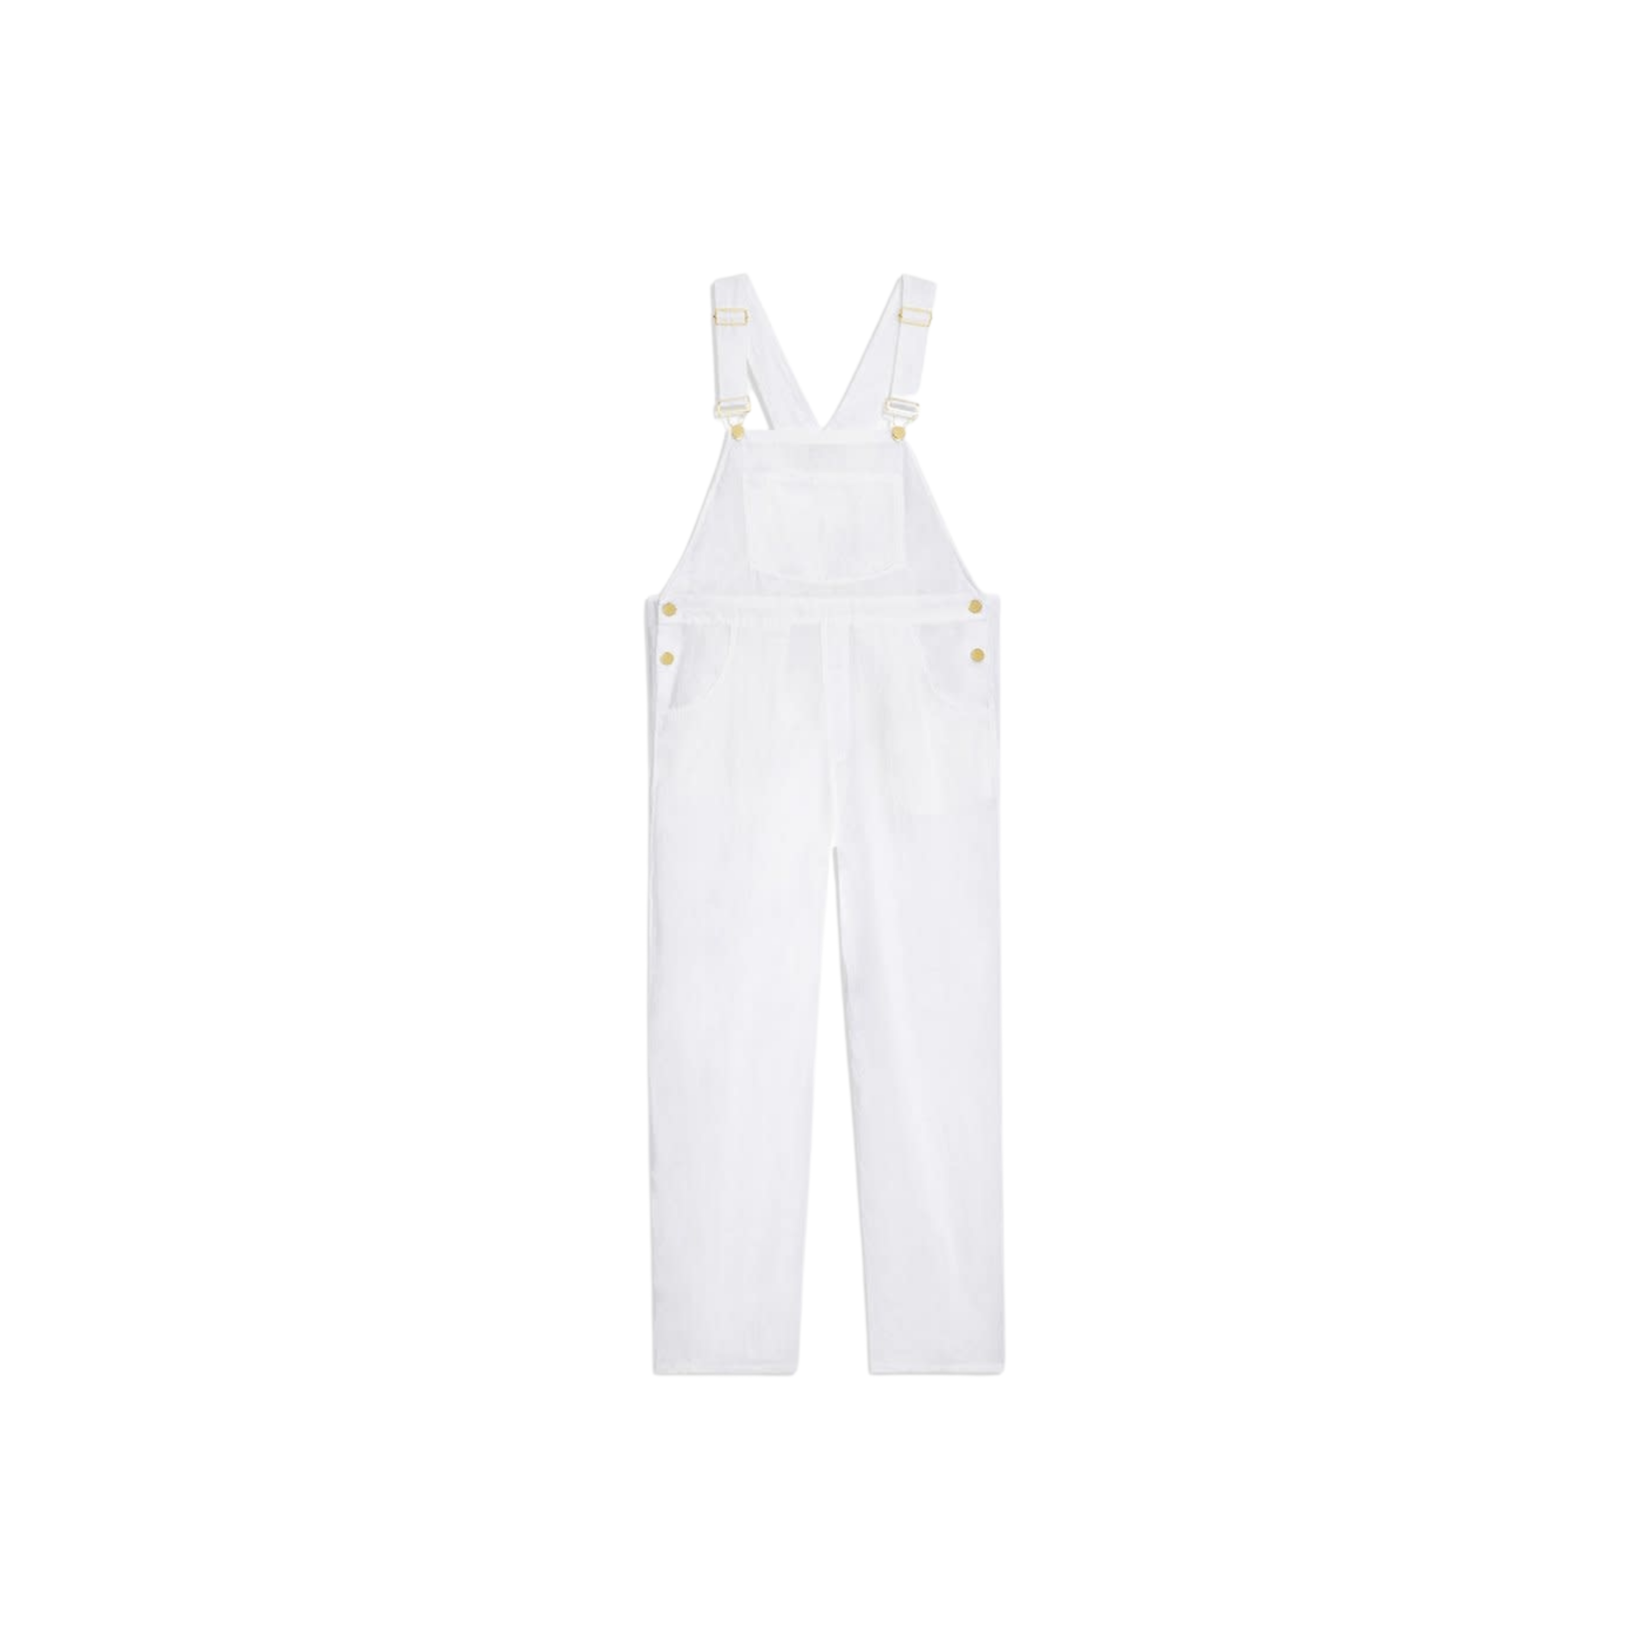 Shop WeWoreWhat Basic Overalls